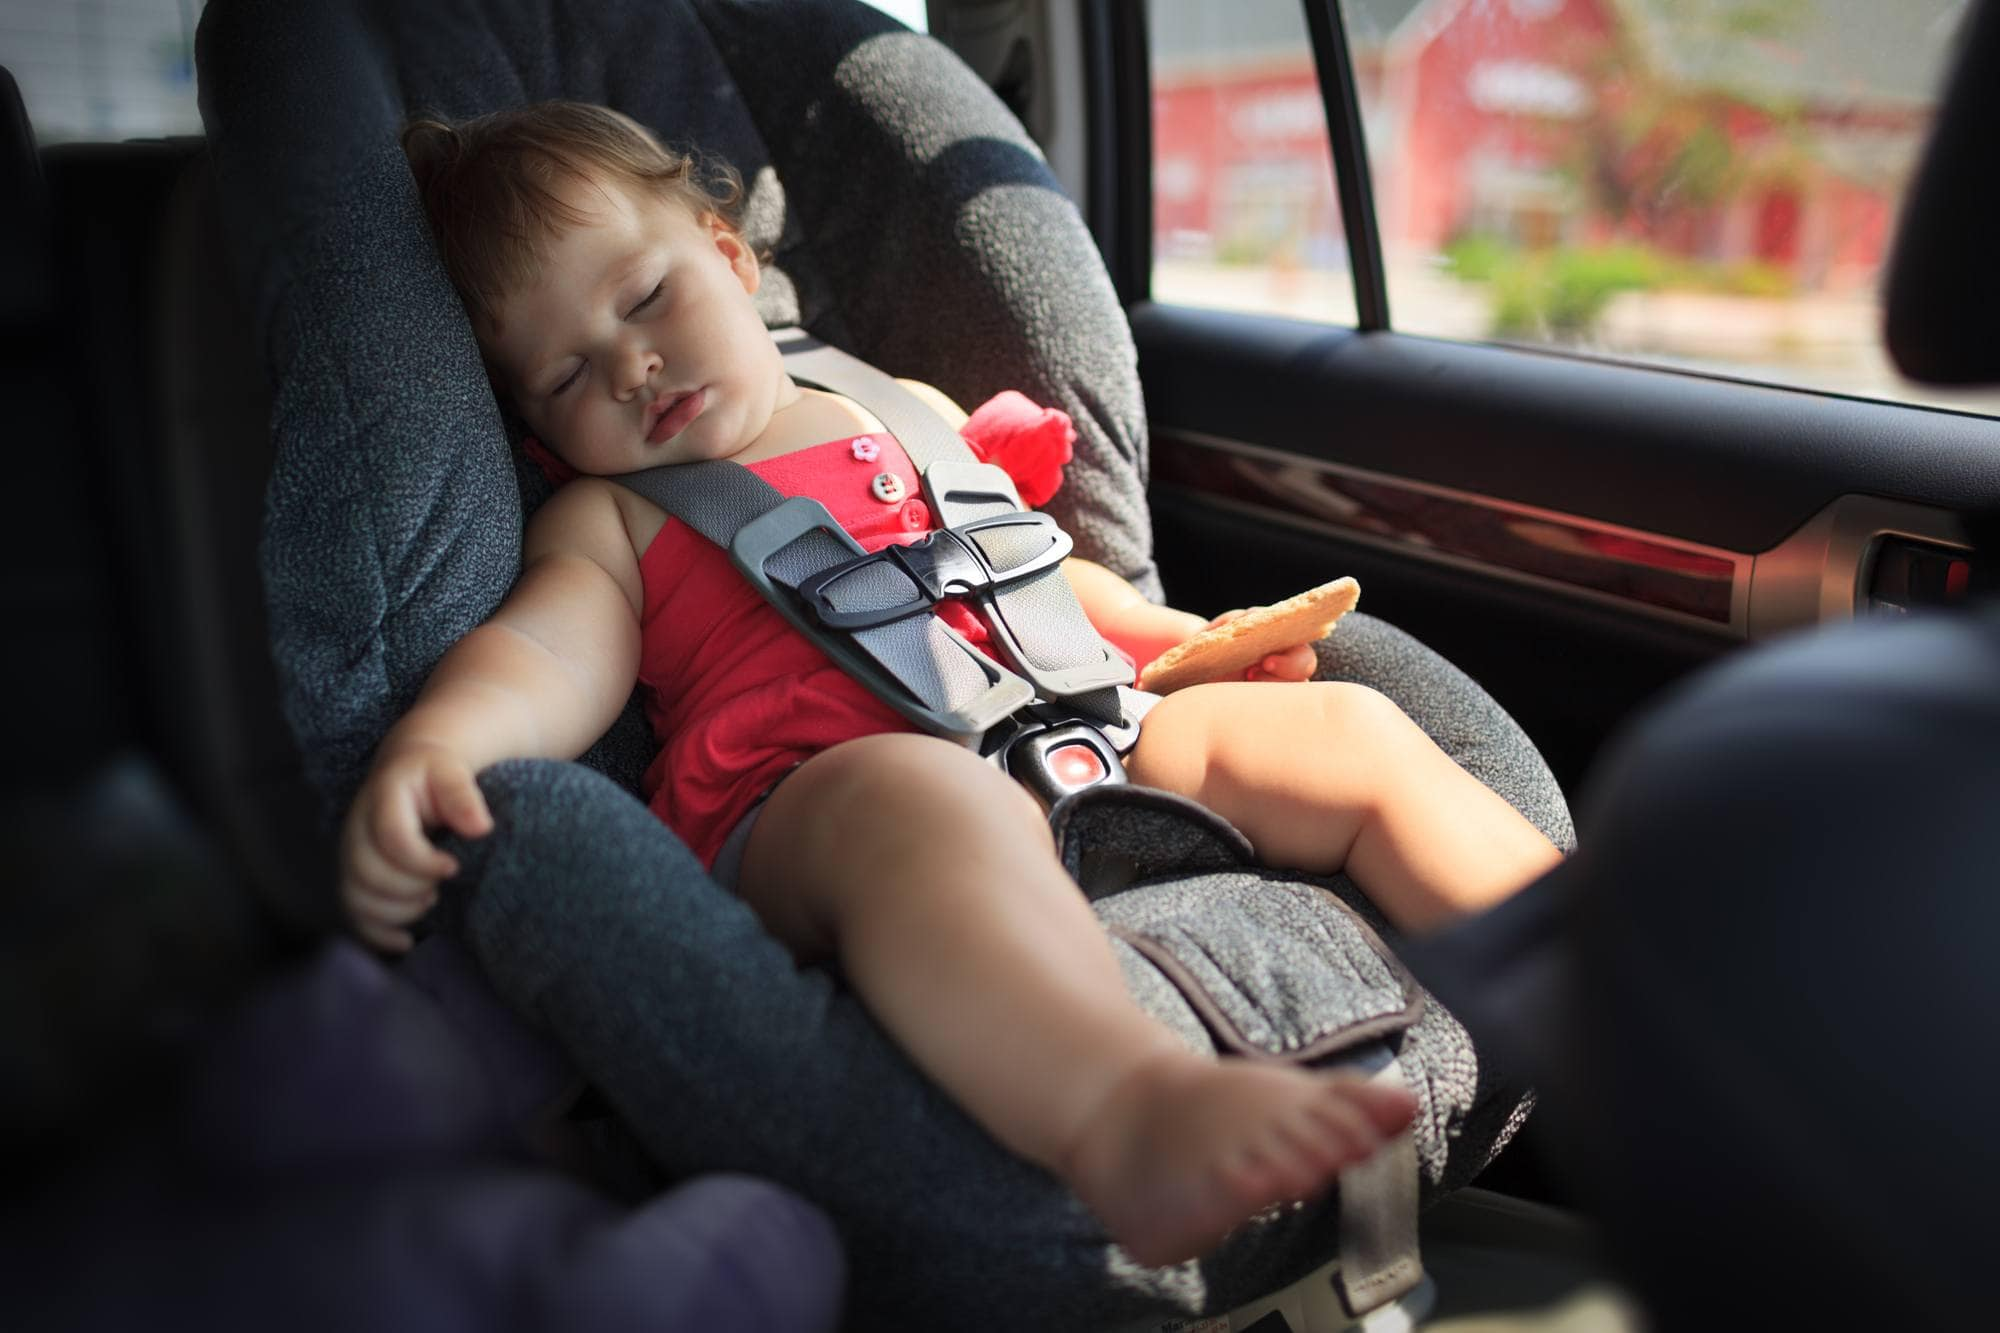 If you're lucky, your baby or toddler just may take a nap during your road trip!